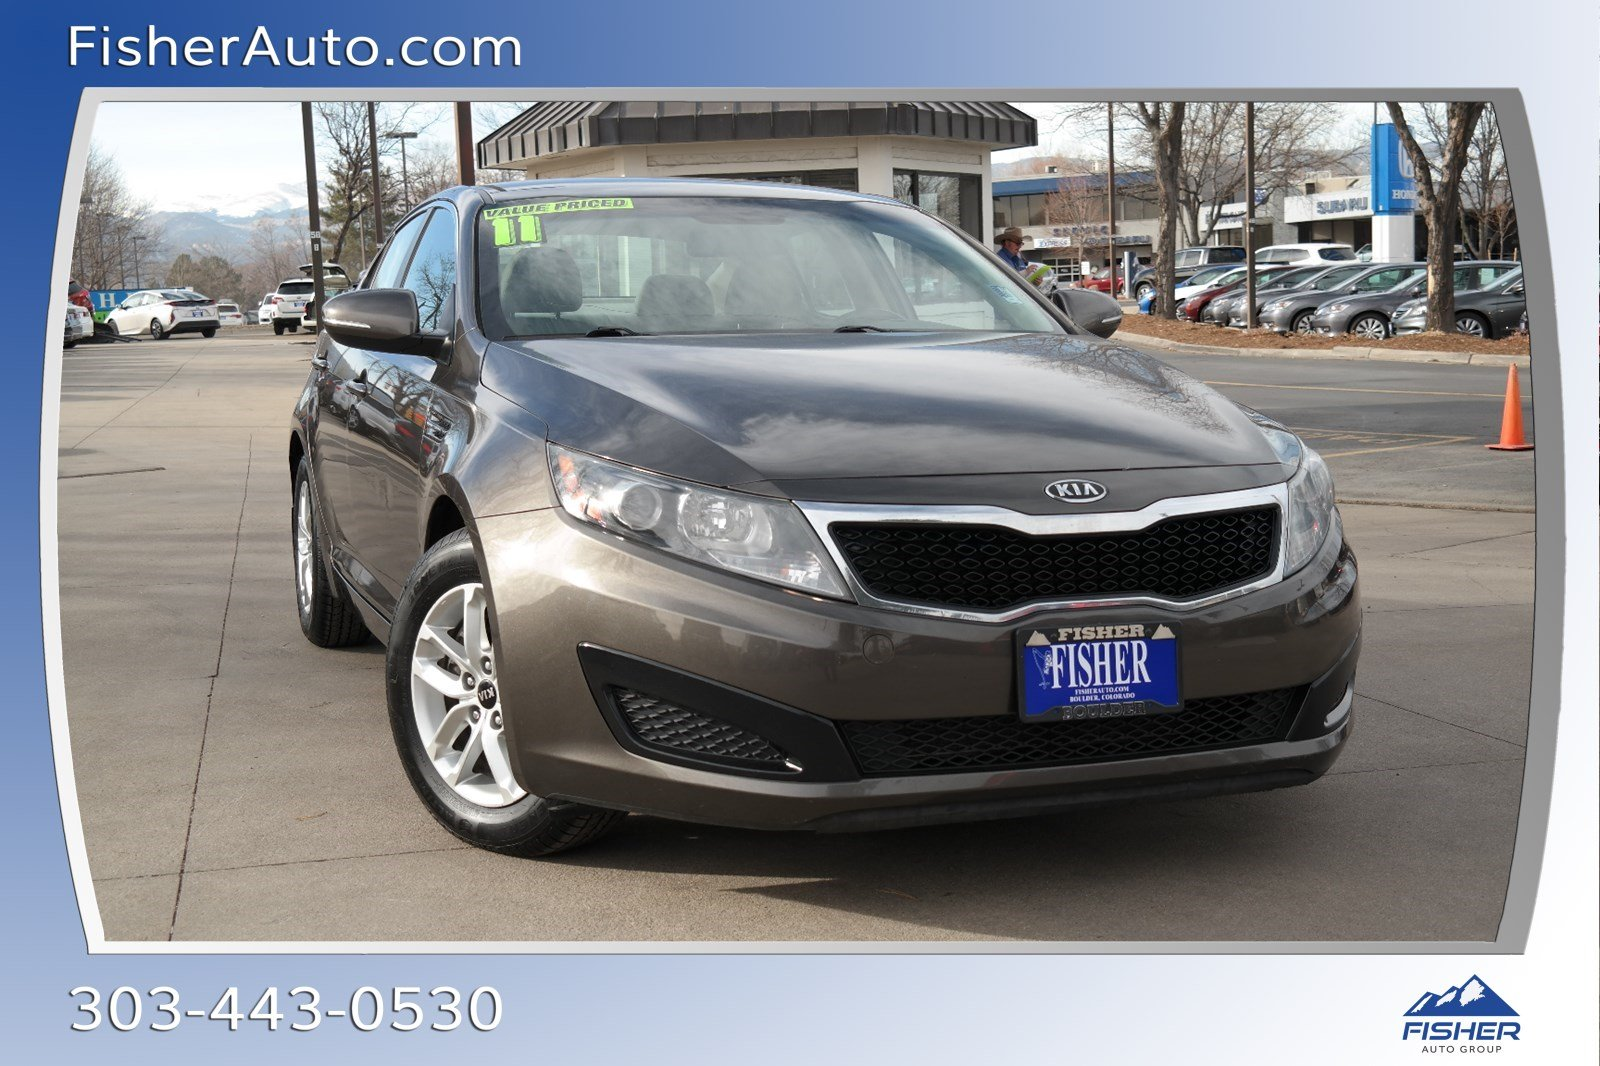 Pre-Owned 2011 Kia Optima 4dr Sdn 2.4L Auto LX